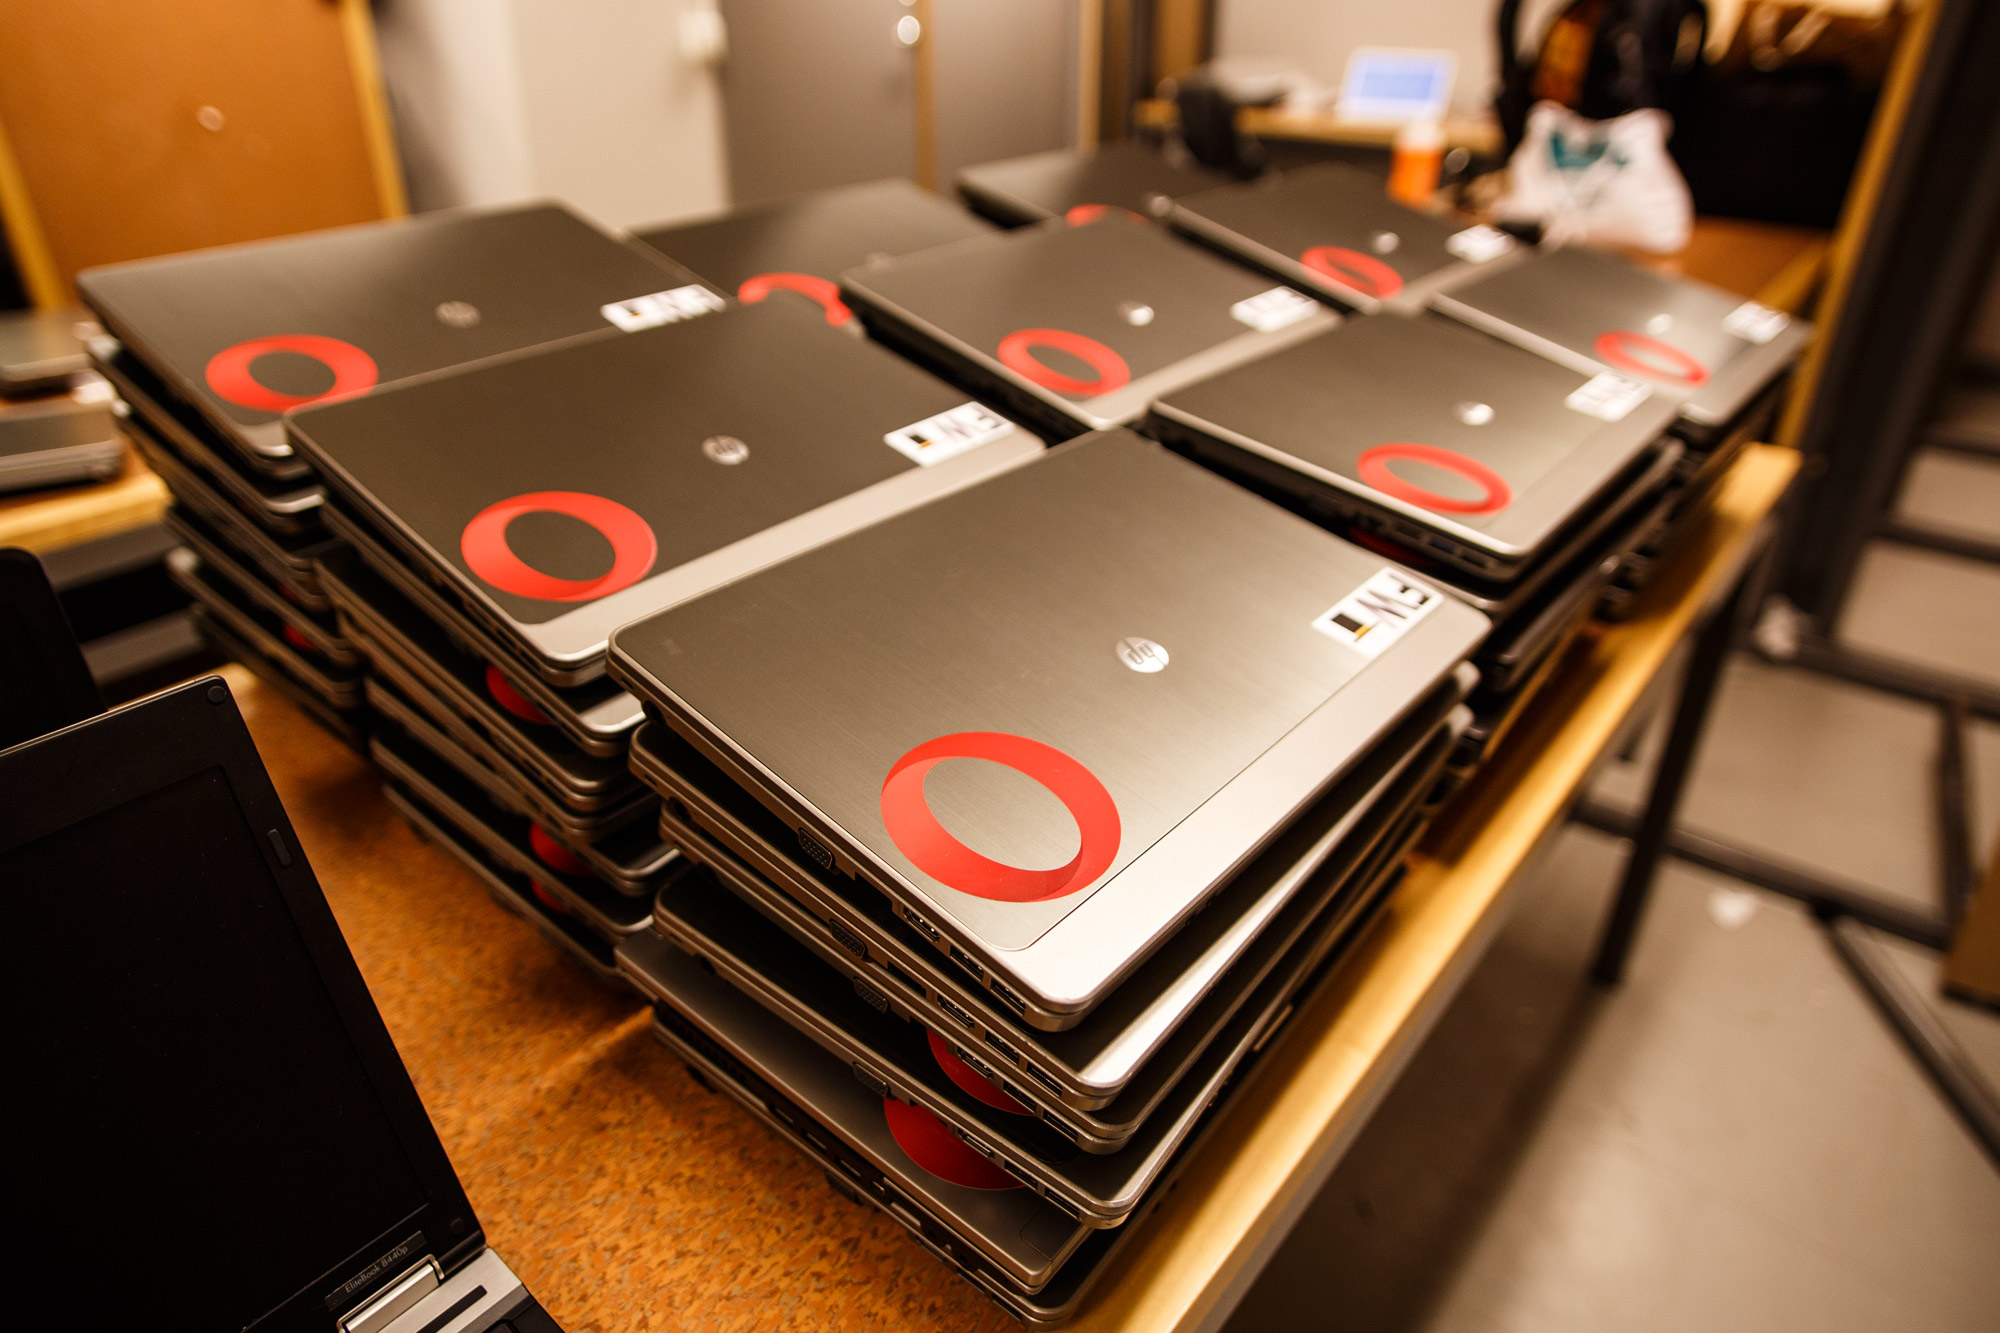 Some of the computers with Opera and Findwise stickers.